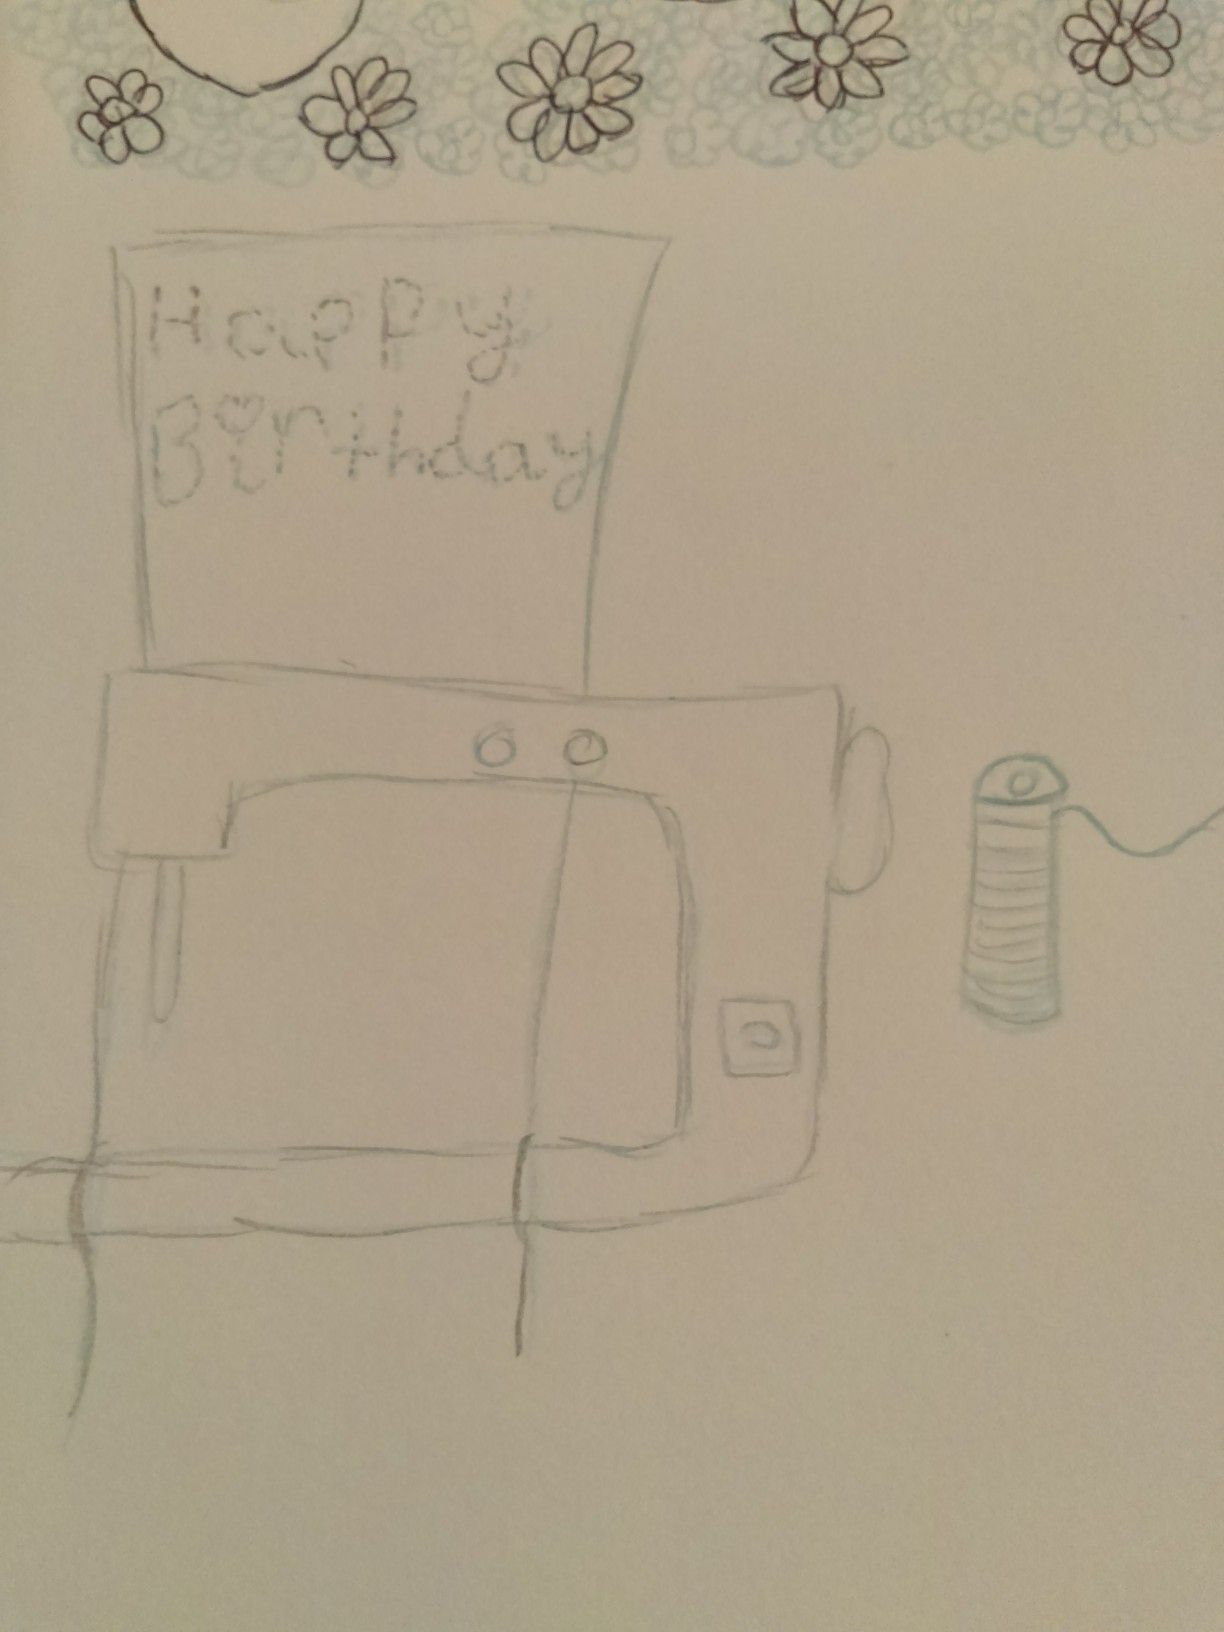 A pencil sketch of a family friend birthday card